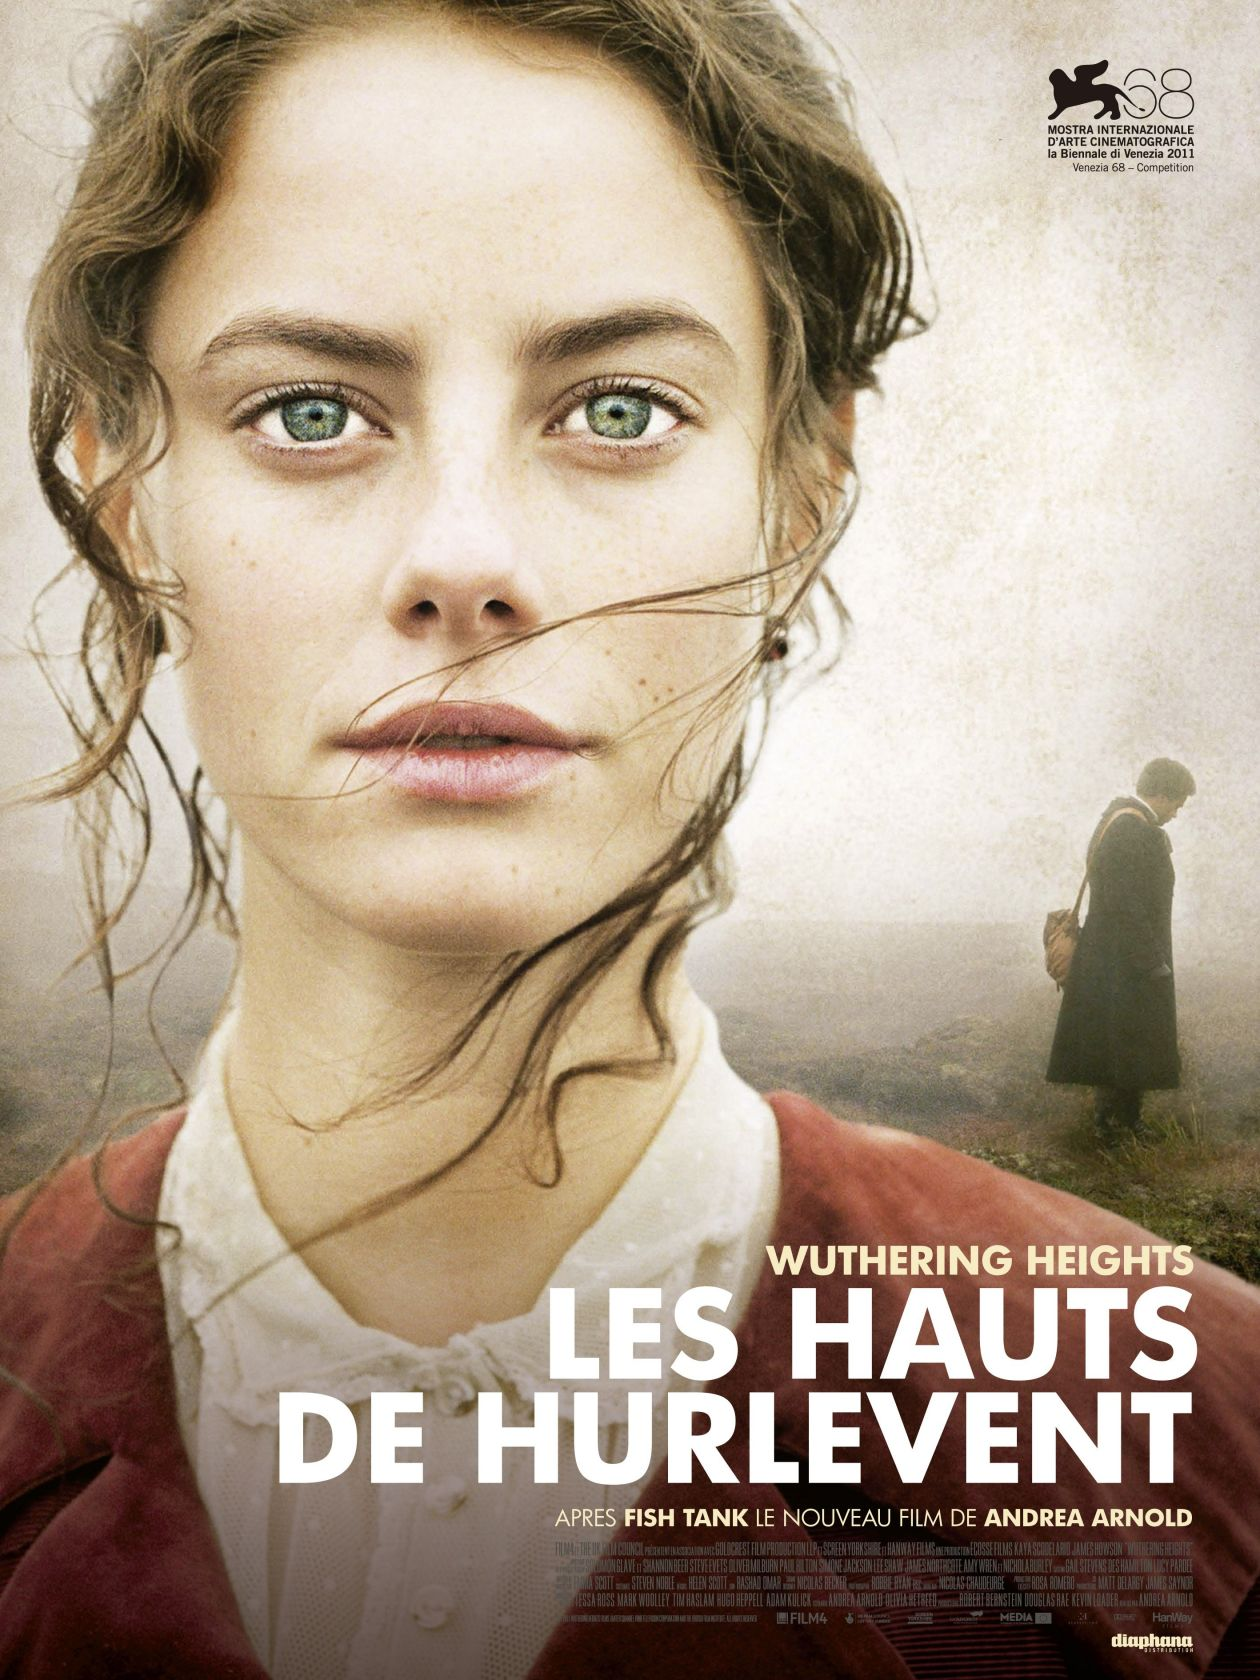 Kaya Scodelario actress / Wuthering Heights / Les Hauts de Hurlevent / Andrea Arnold 2011 Movie Poster Affiche française du film / France / French